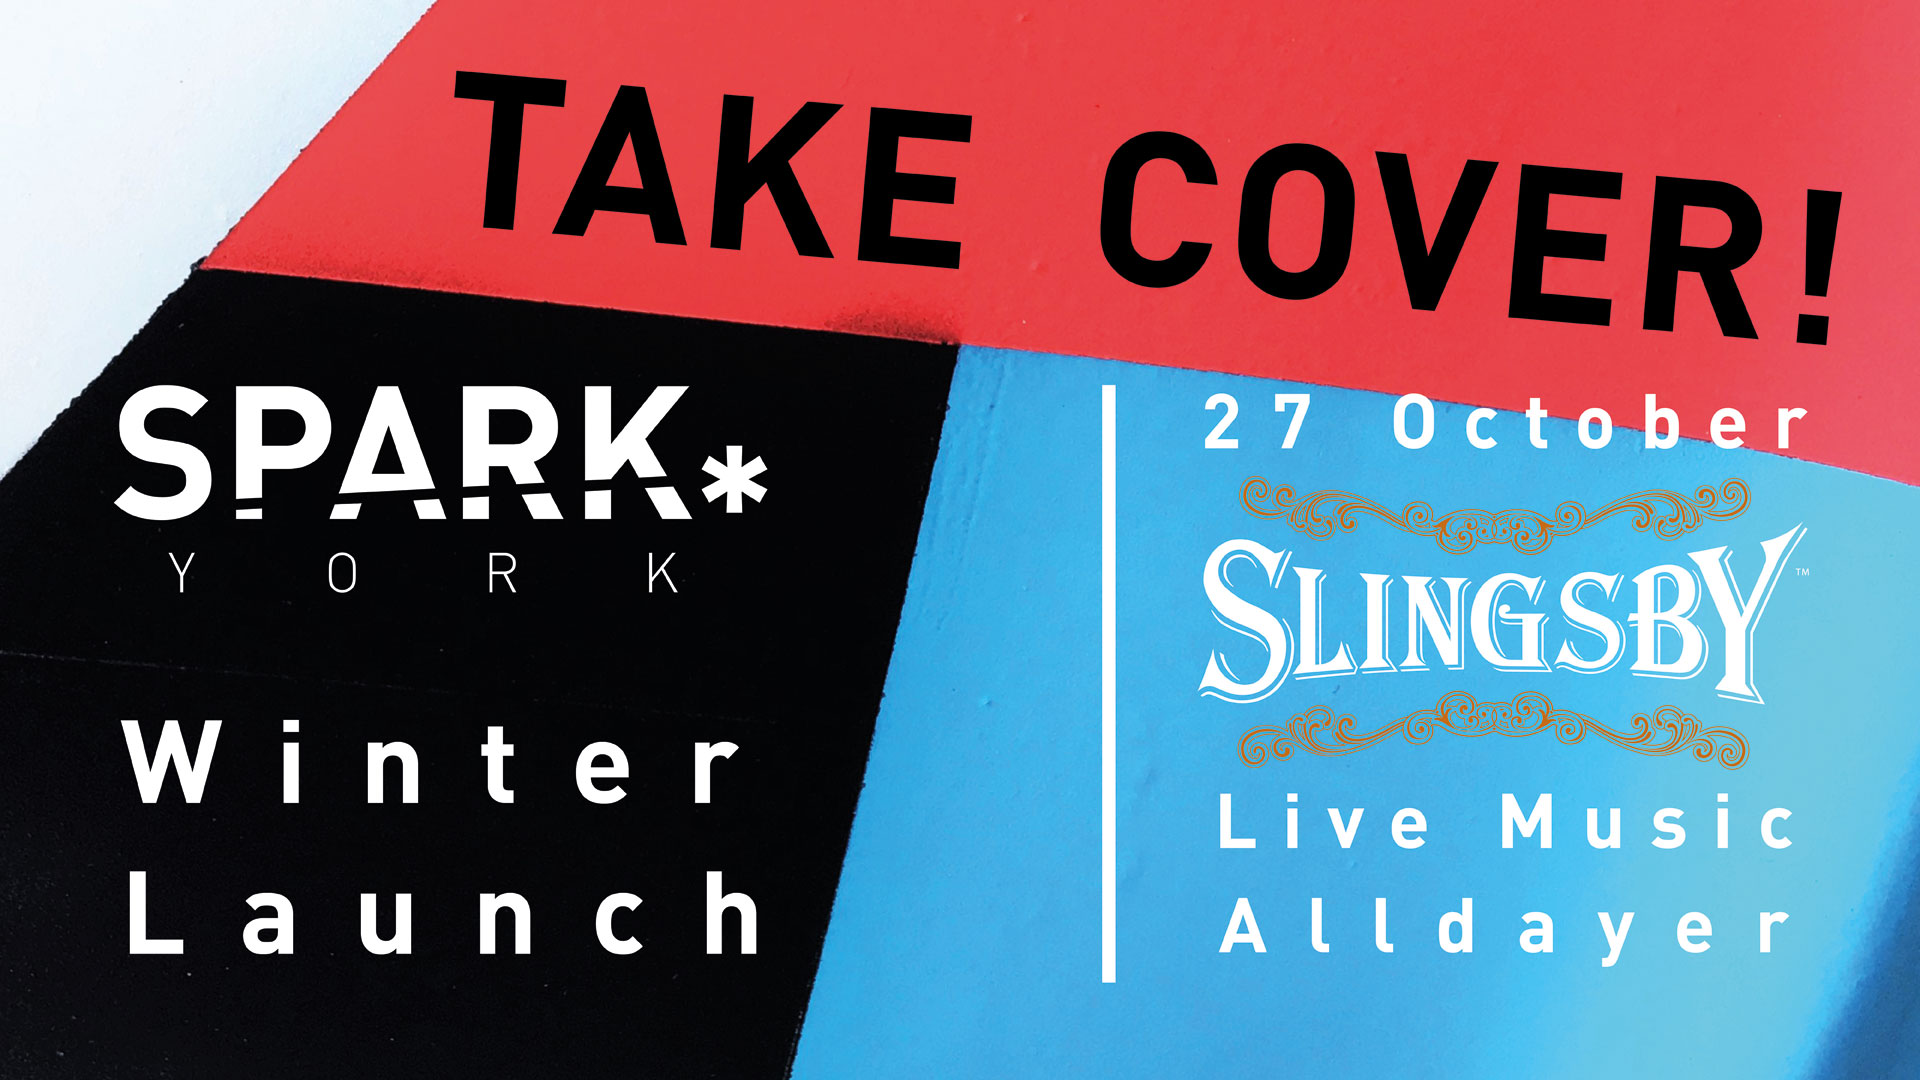 Take Cover! Live Music Day with Slingsby Gin